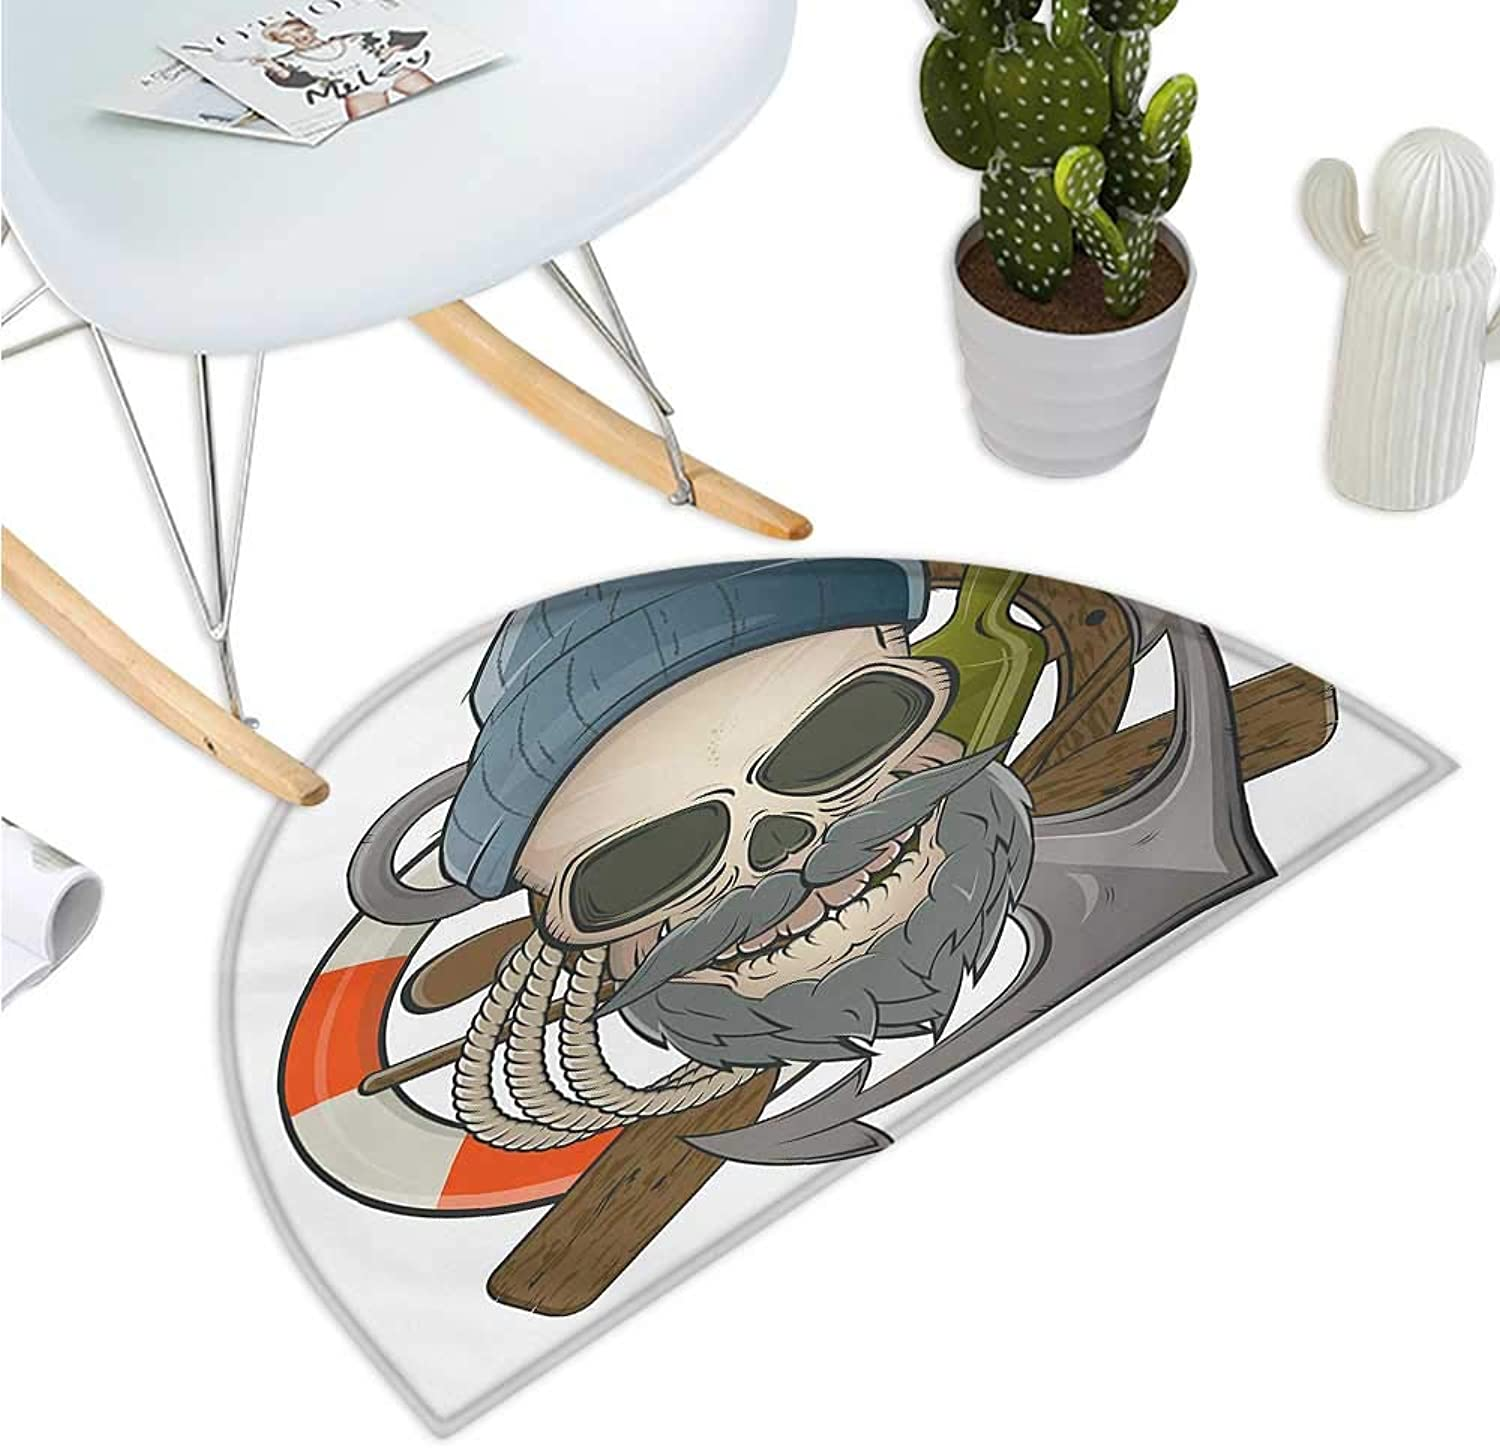 Skull Semicircular Cushion Illustration of Sailor Old Skull with Beard Mascot Nautical Theme Skeleton Lifebuoy Entry Door Mat H 51.1  xD 76.7  Multicolor